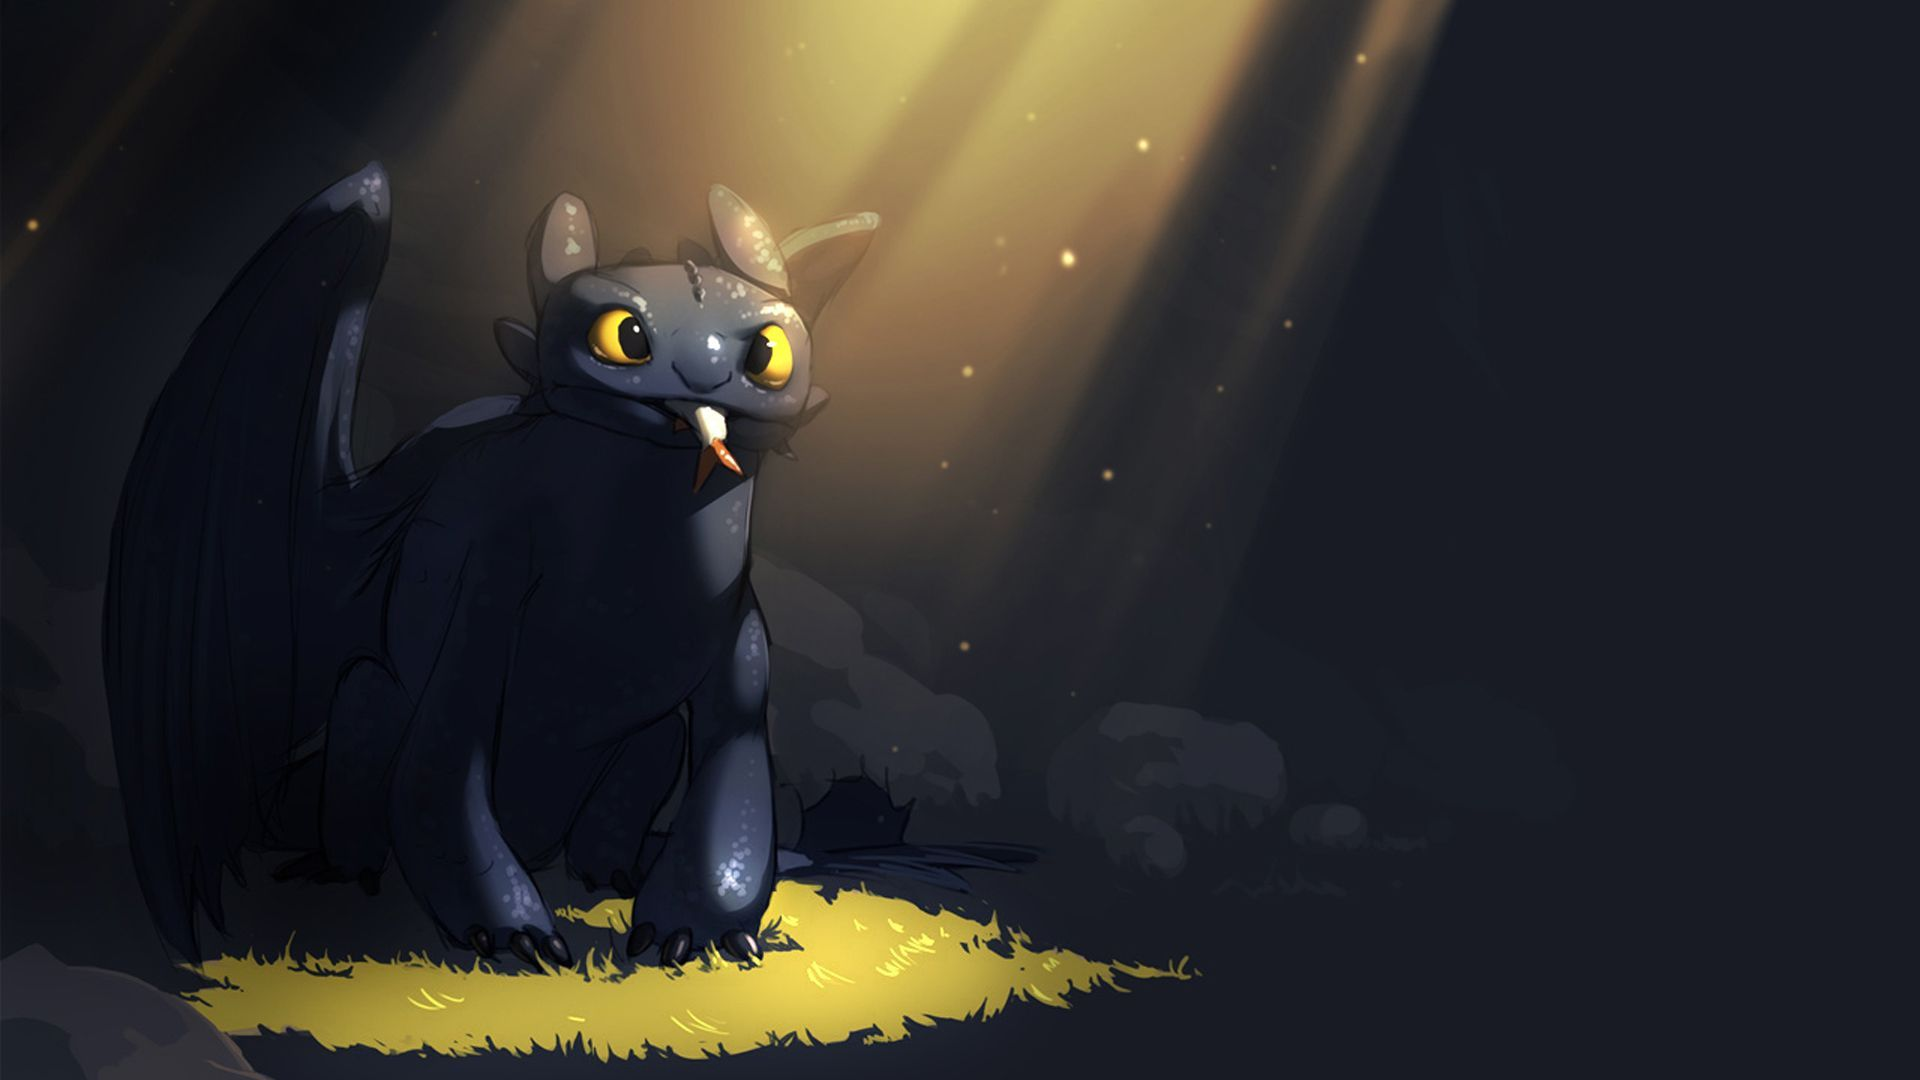 How to Train Your Dragon Toothless   Wallpaper High Definition High 1920x1080